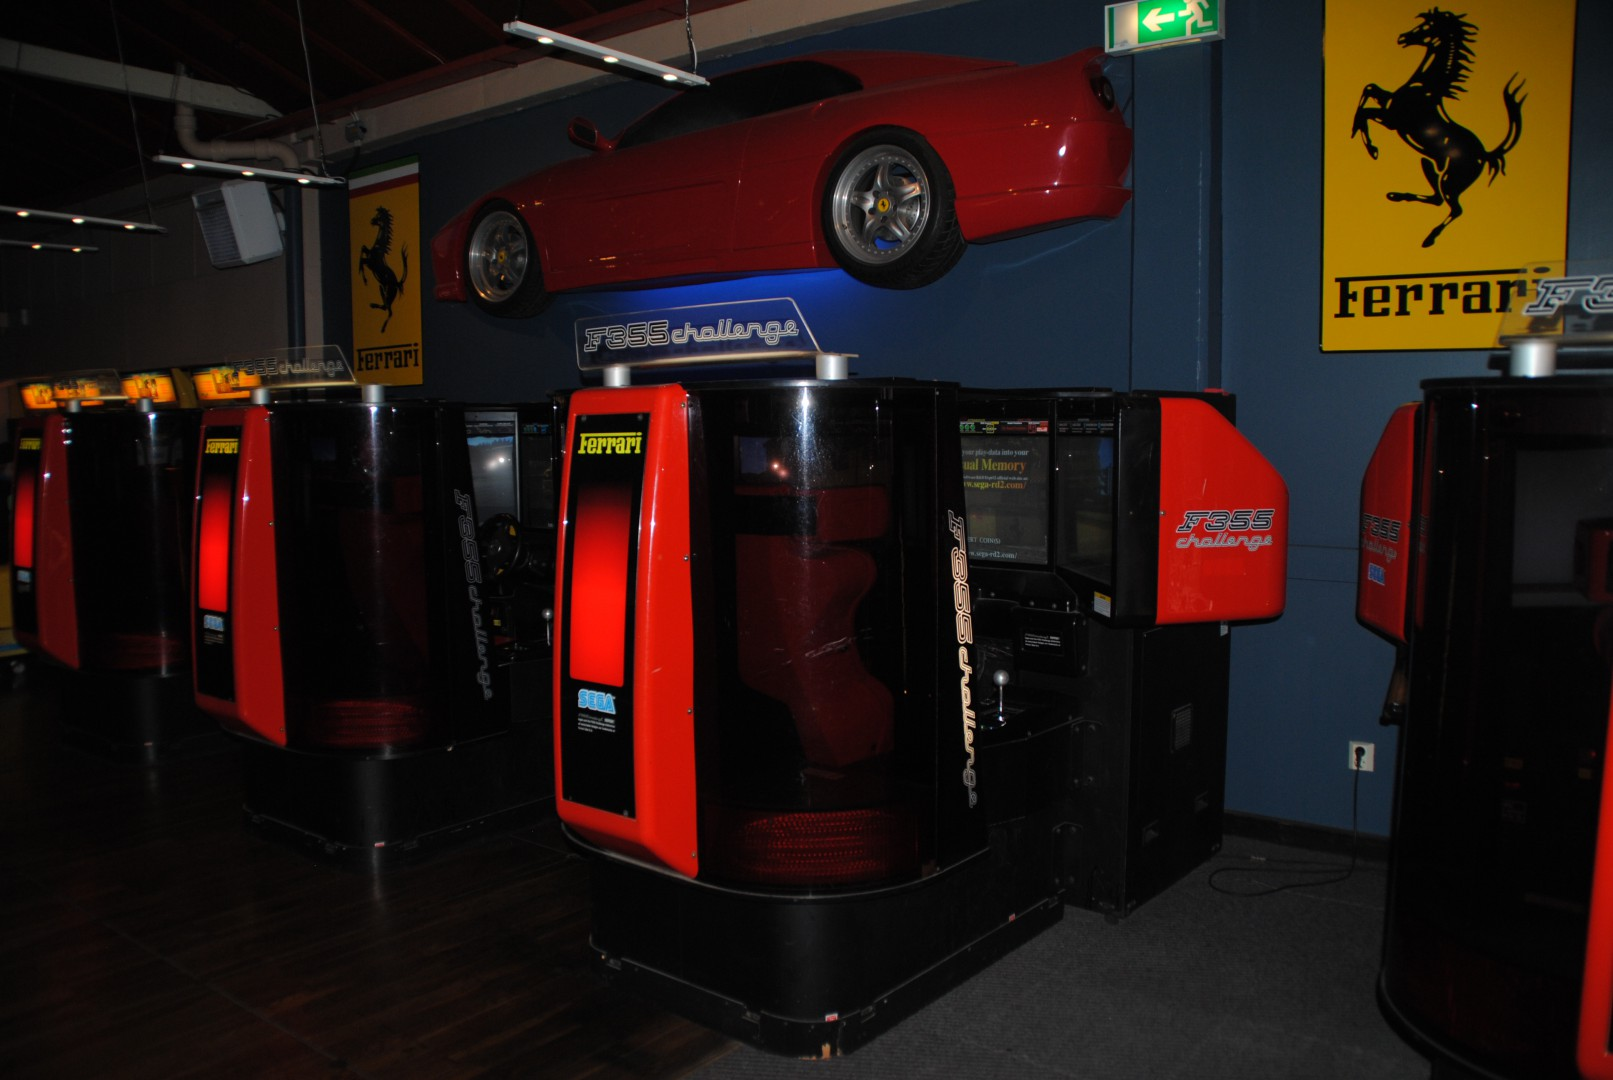 F355 Challenge (8 Cabinets + Wall mount) / At Liseberg Fun Fair